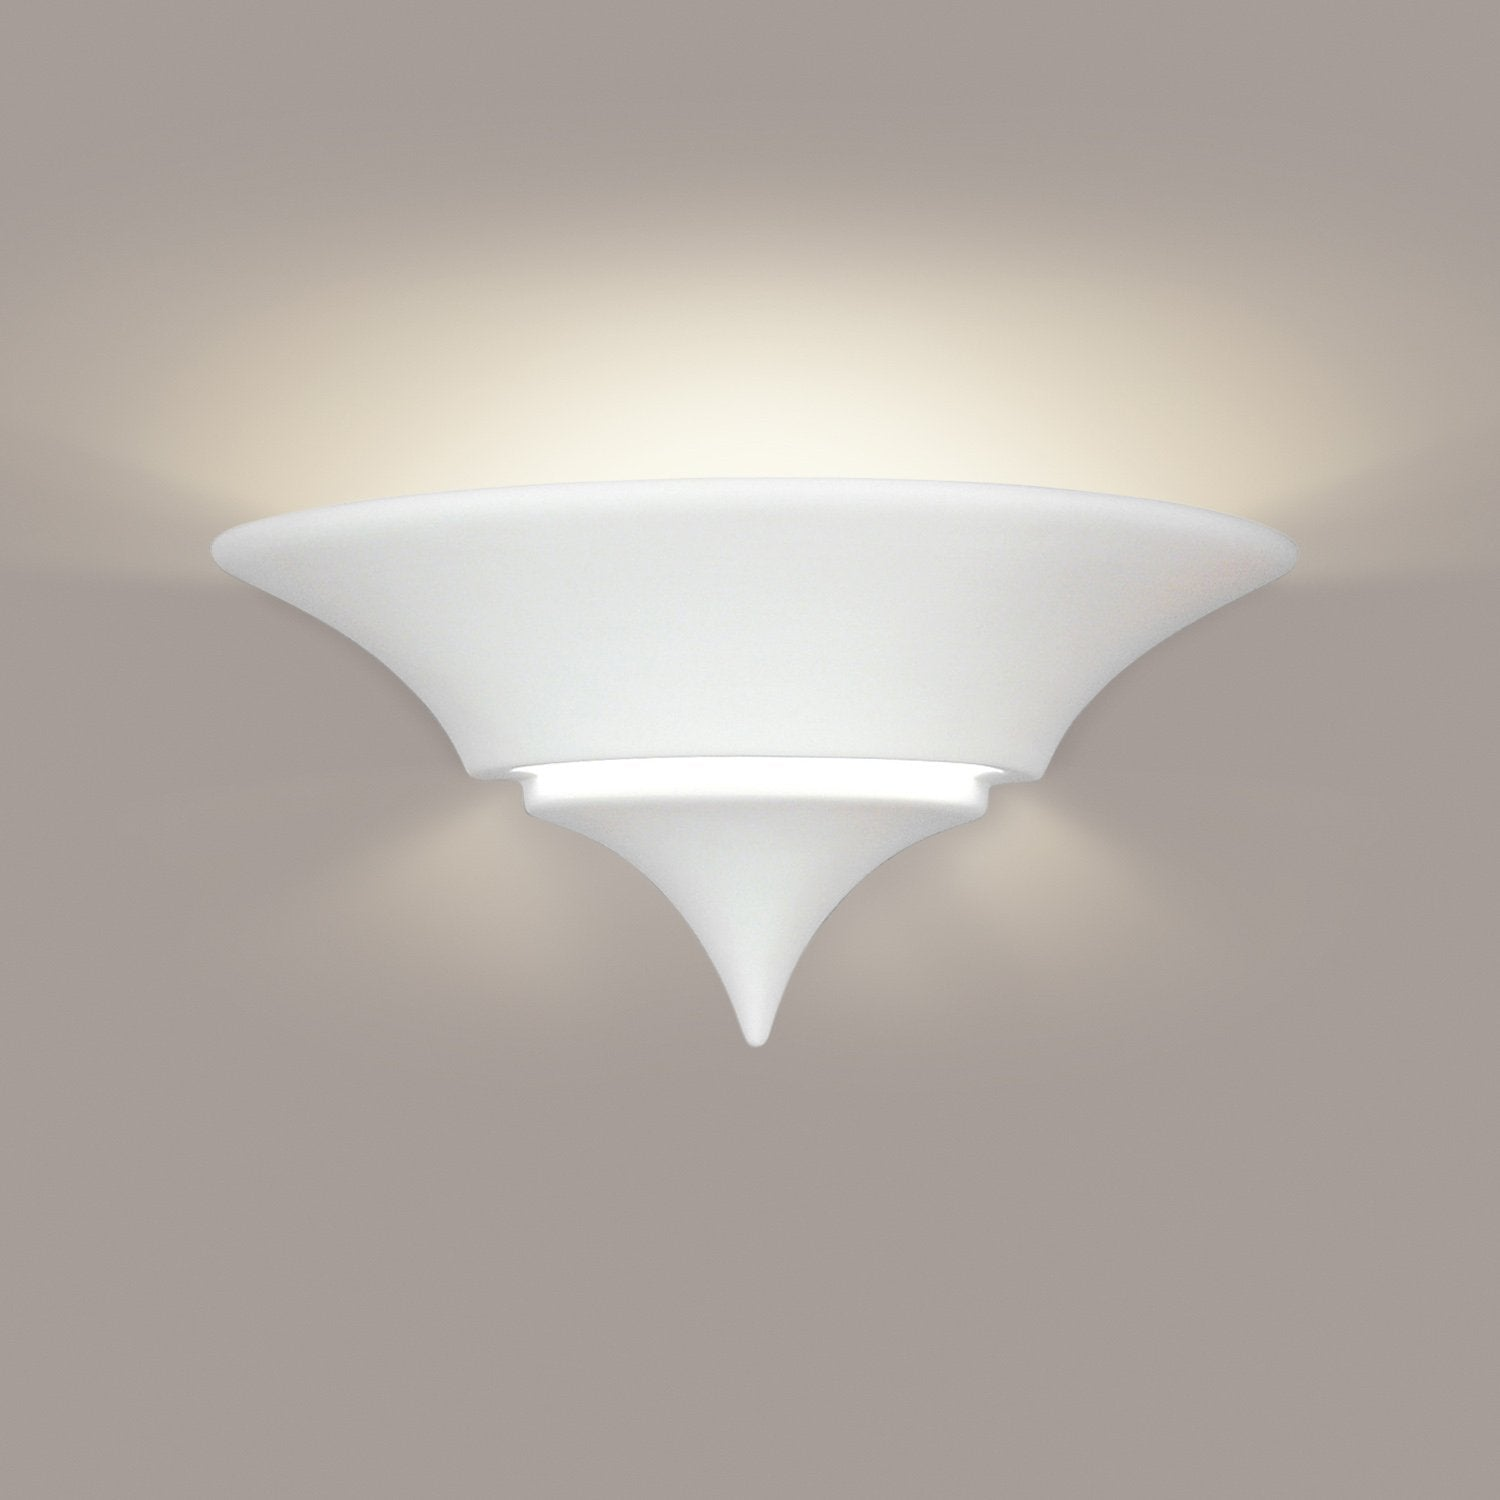 A19 401-CFL13-MB2 Islands of Light Collection Atlantis Zinc White Marble Finish Wall Sconce